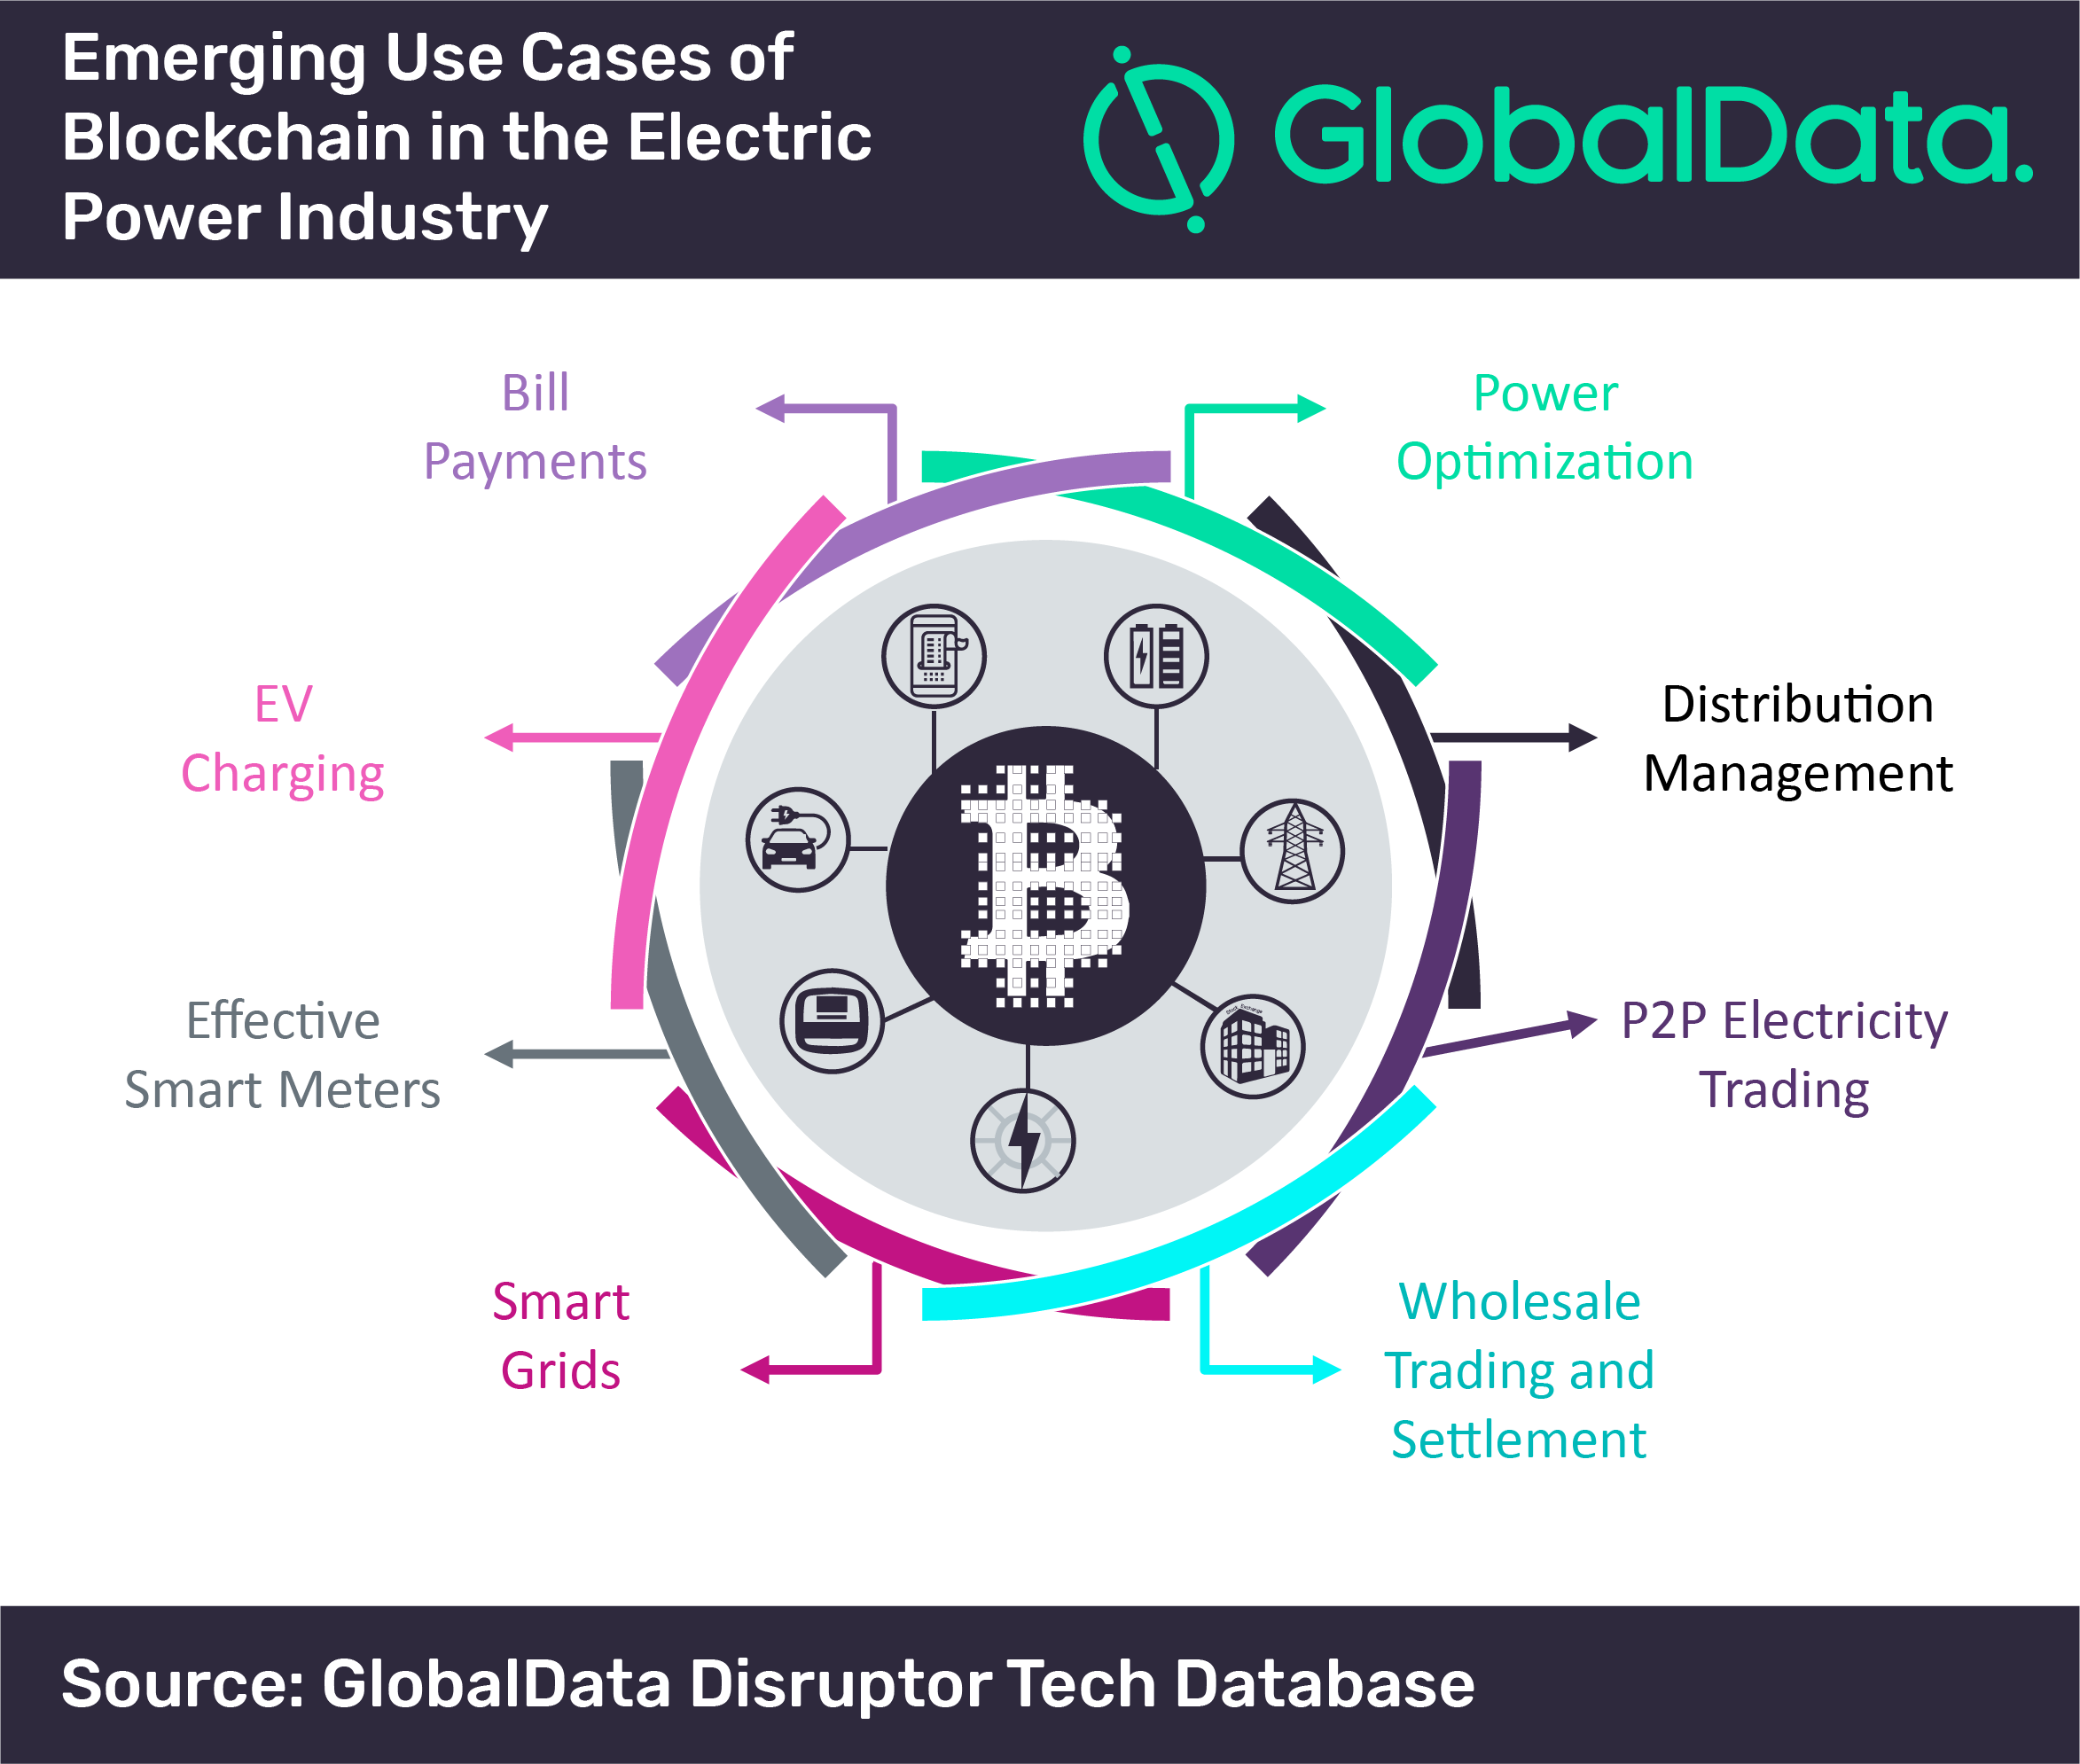 Emerging use cases of blockchain in the electric power industry. Source: GlobalData